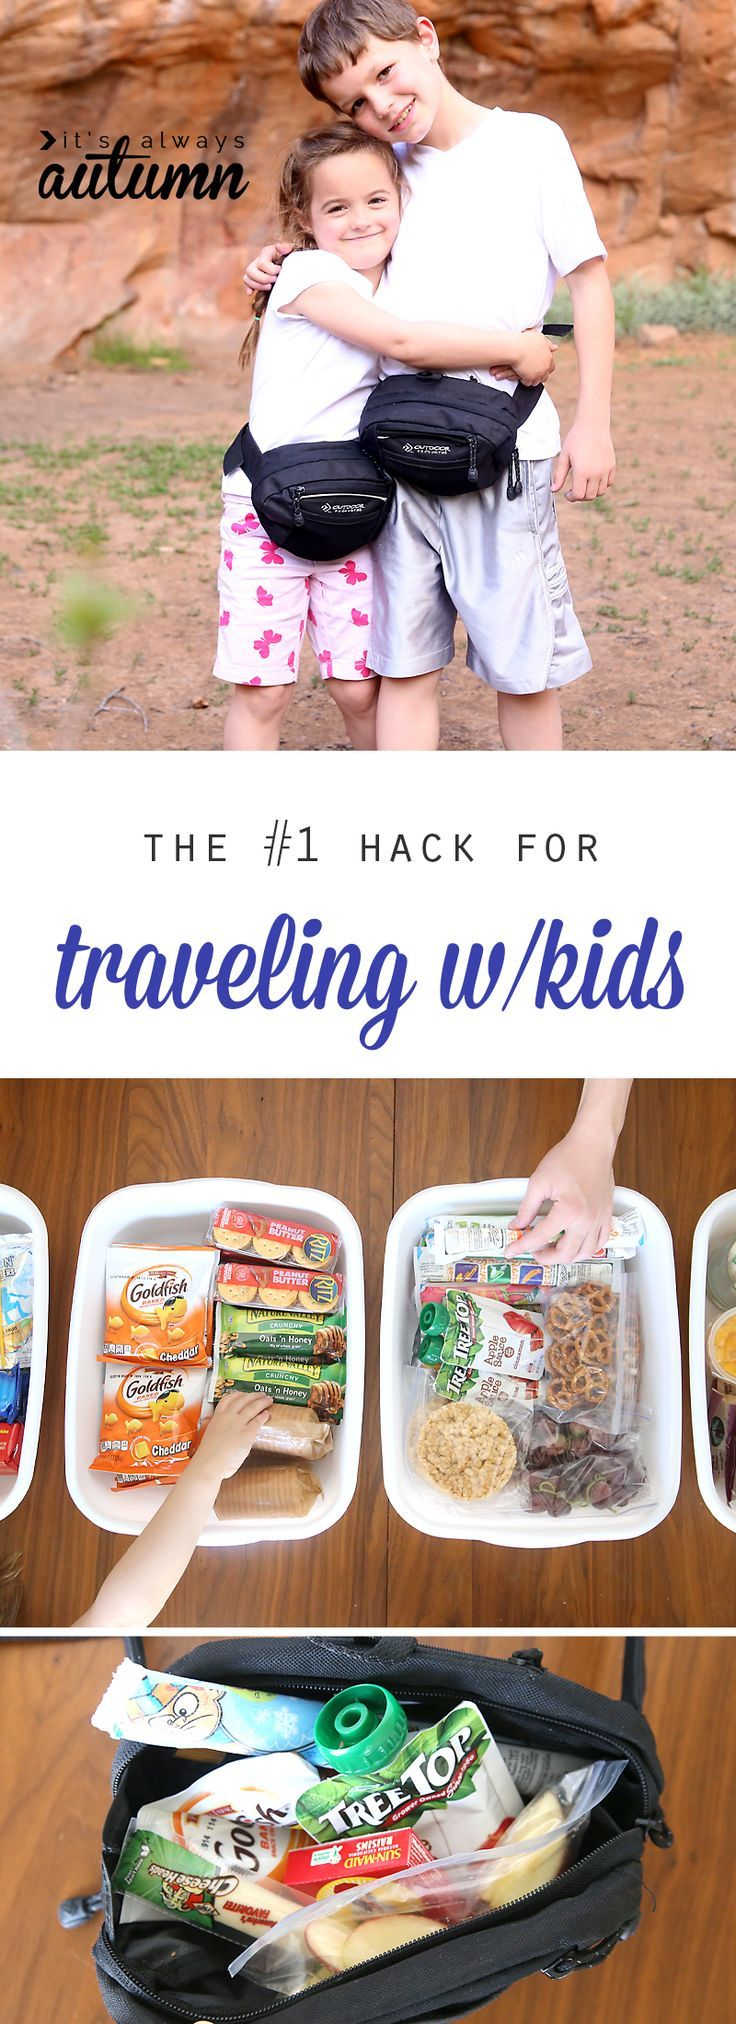 the VERY BEST hack for traveling with kids